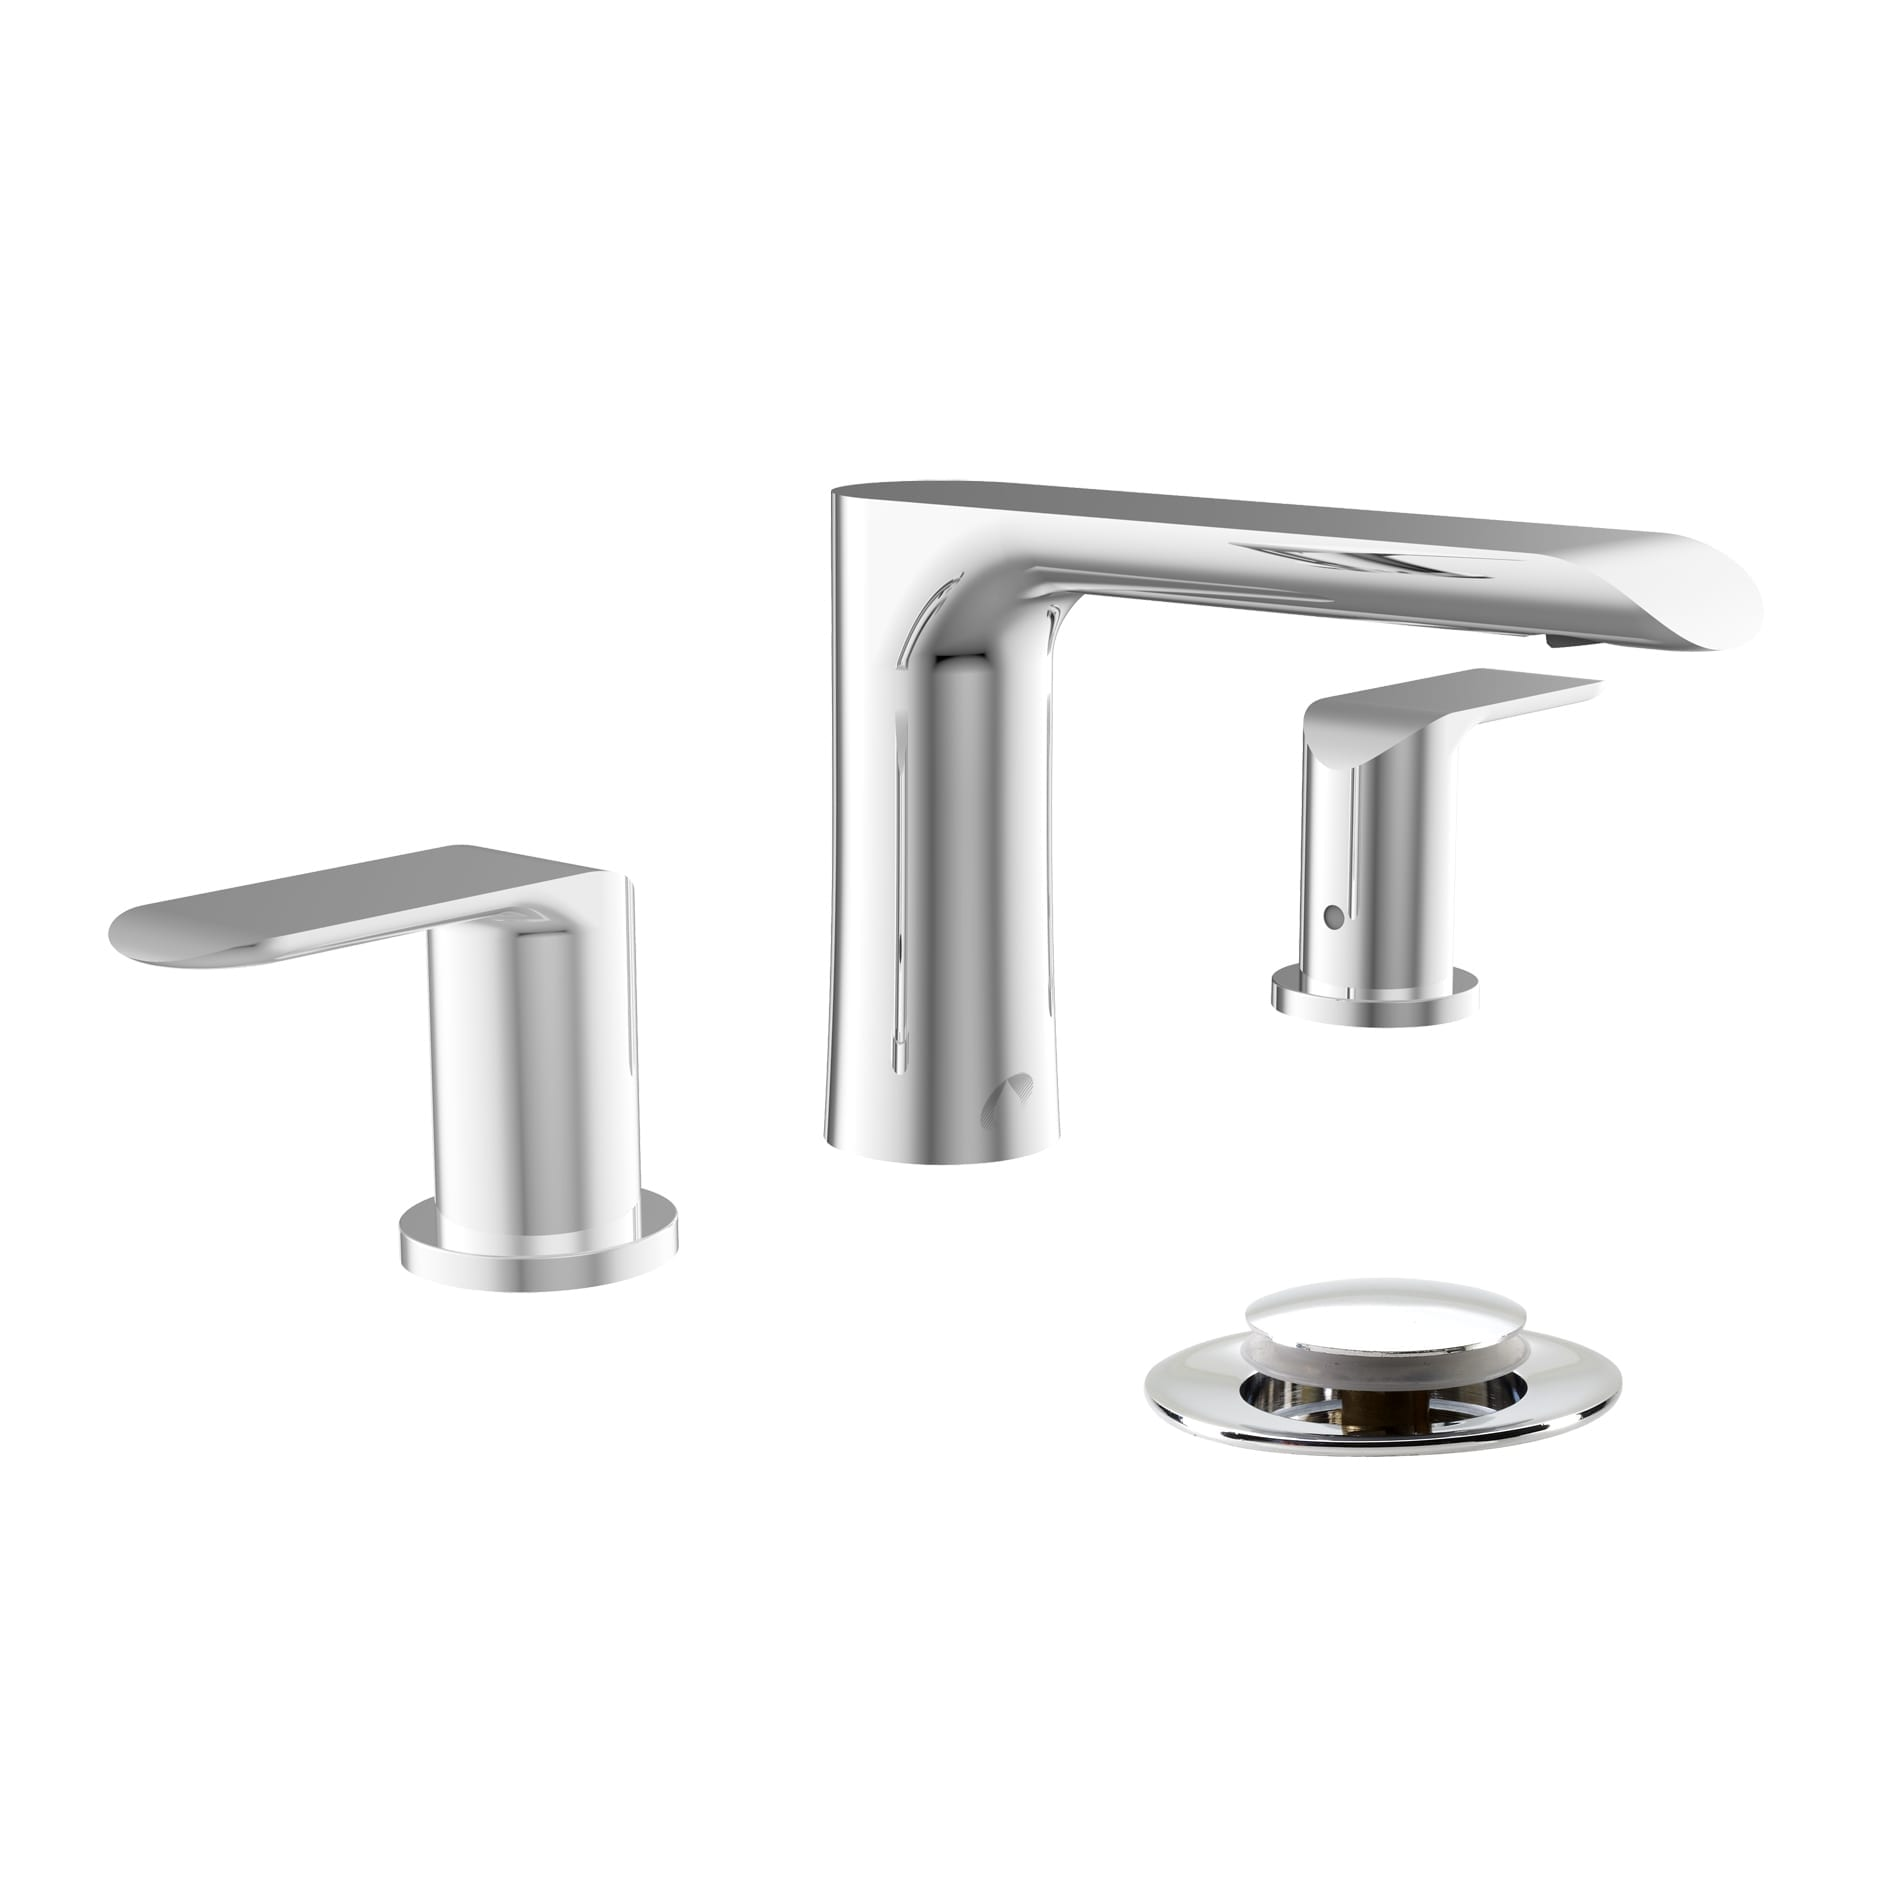 Outstanding Lavatory Sink Faucet With Swivel Aerator Belanger Upt Download Free Architecture Designs Jebrpmadebymaigaardcom